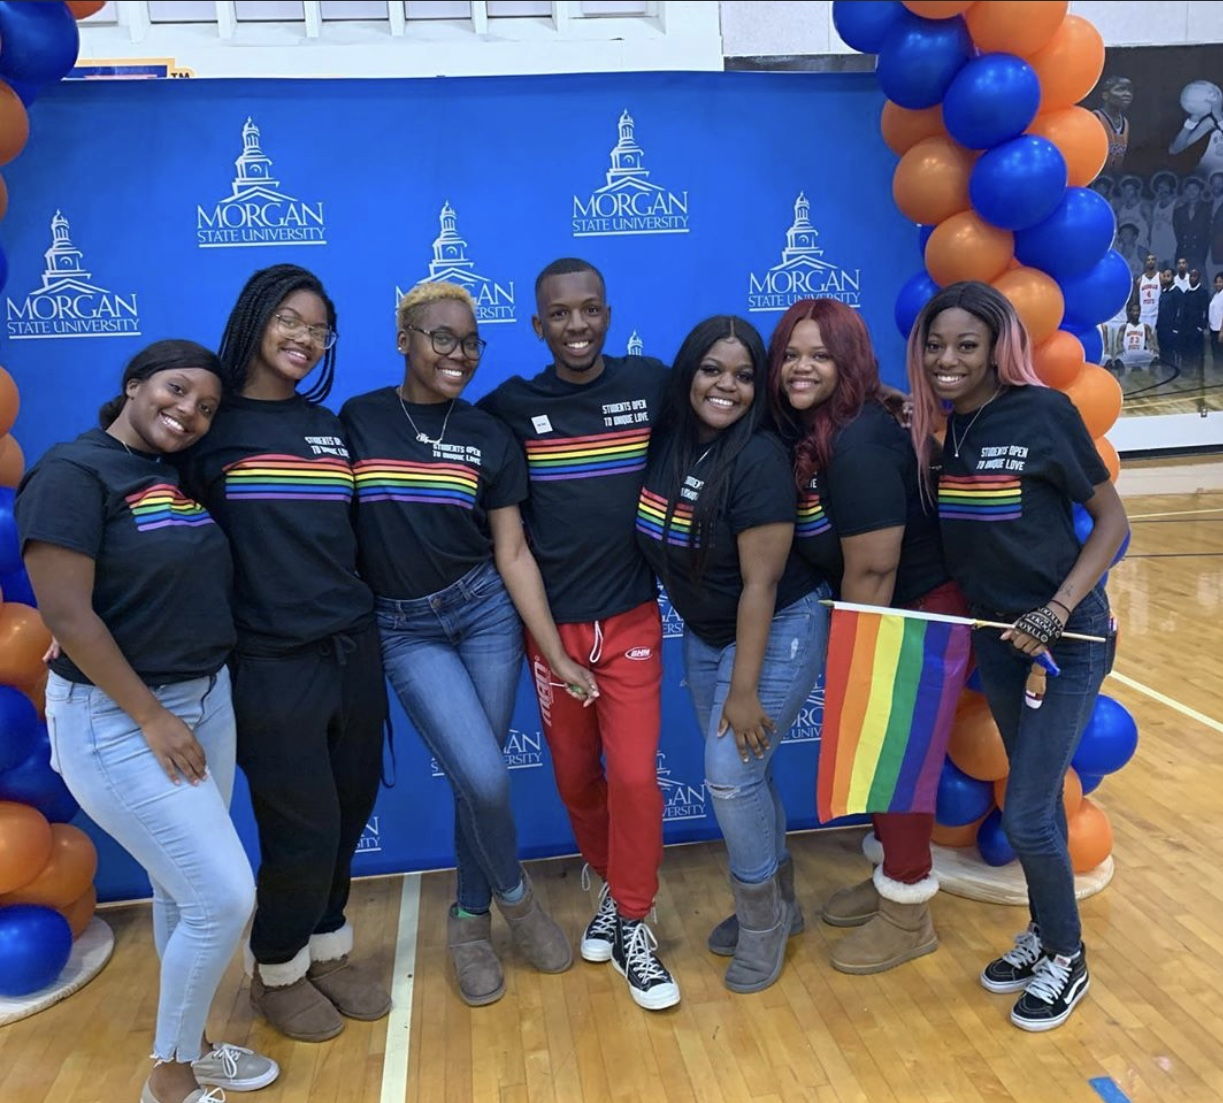 SOUL posed for a picture during the university's annual Explore Morgan Day in November.